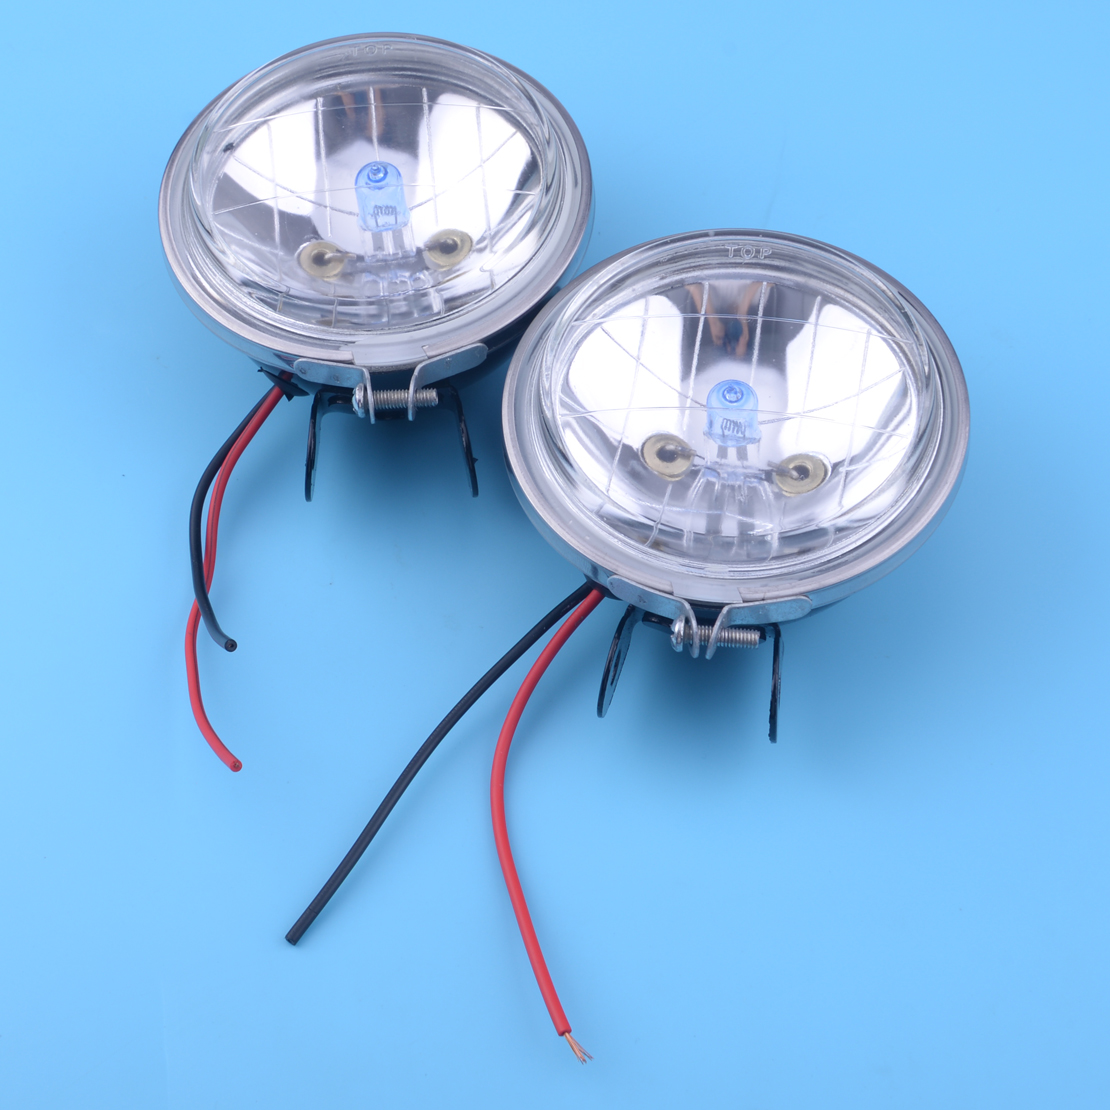 Clear 2x H3 90mm Round Lamps Fog Lights 100W Kit 12V 3.5inch For Van Bus Truck